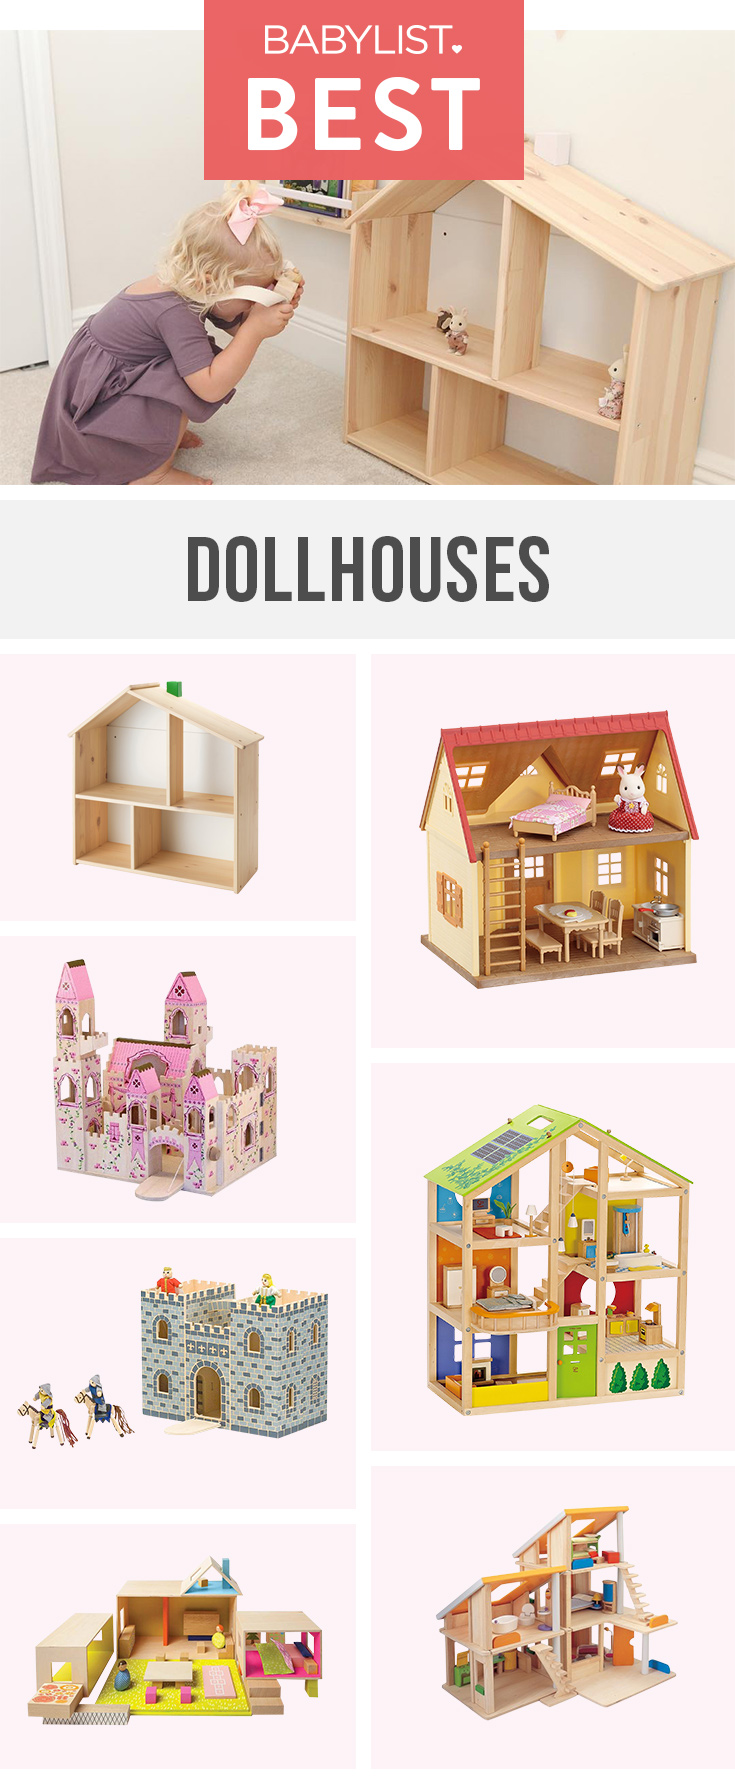 Images of doll houses - Sharing Cooperation And Language Development Are Just A Fraction Of The Skills Kiddos Build When Best Dollhouses